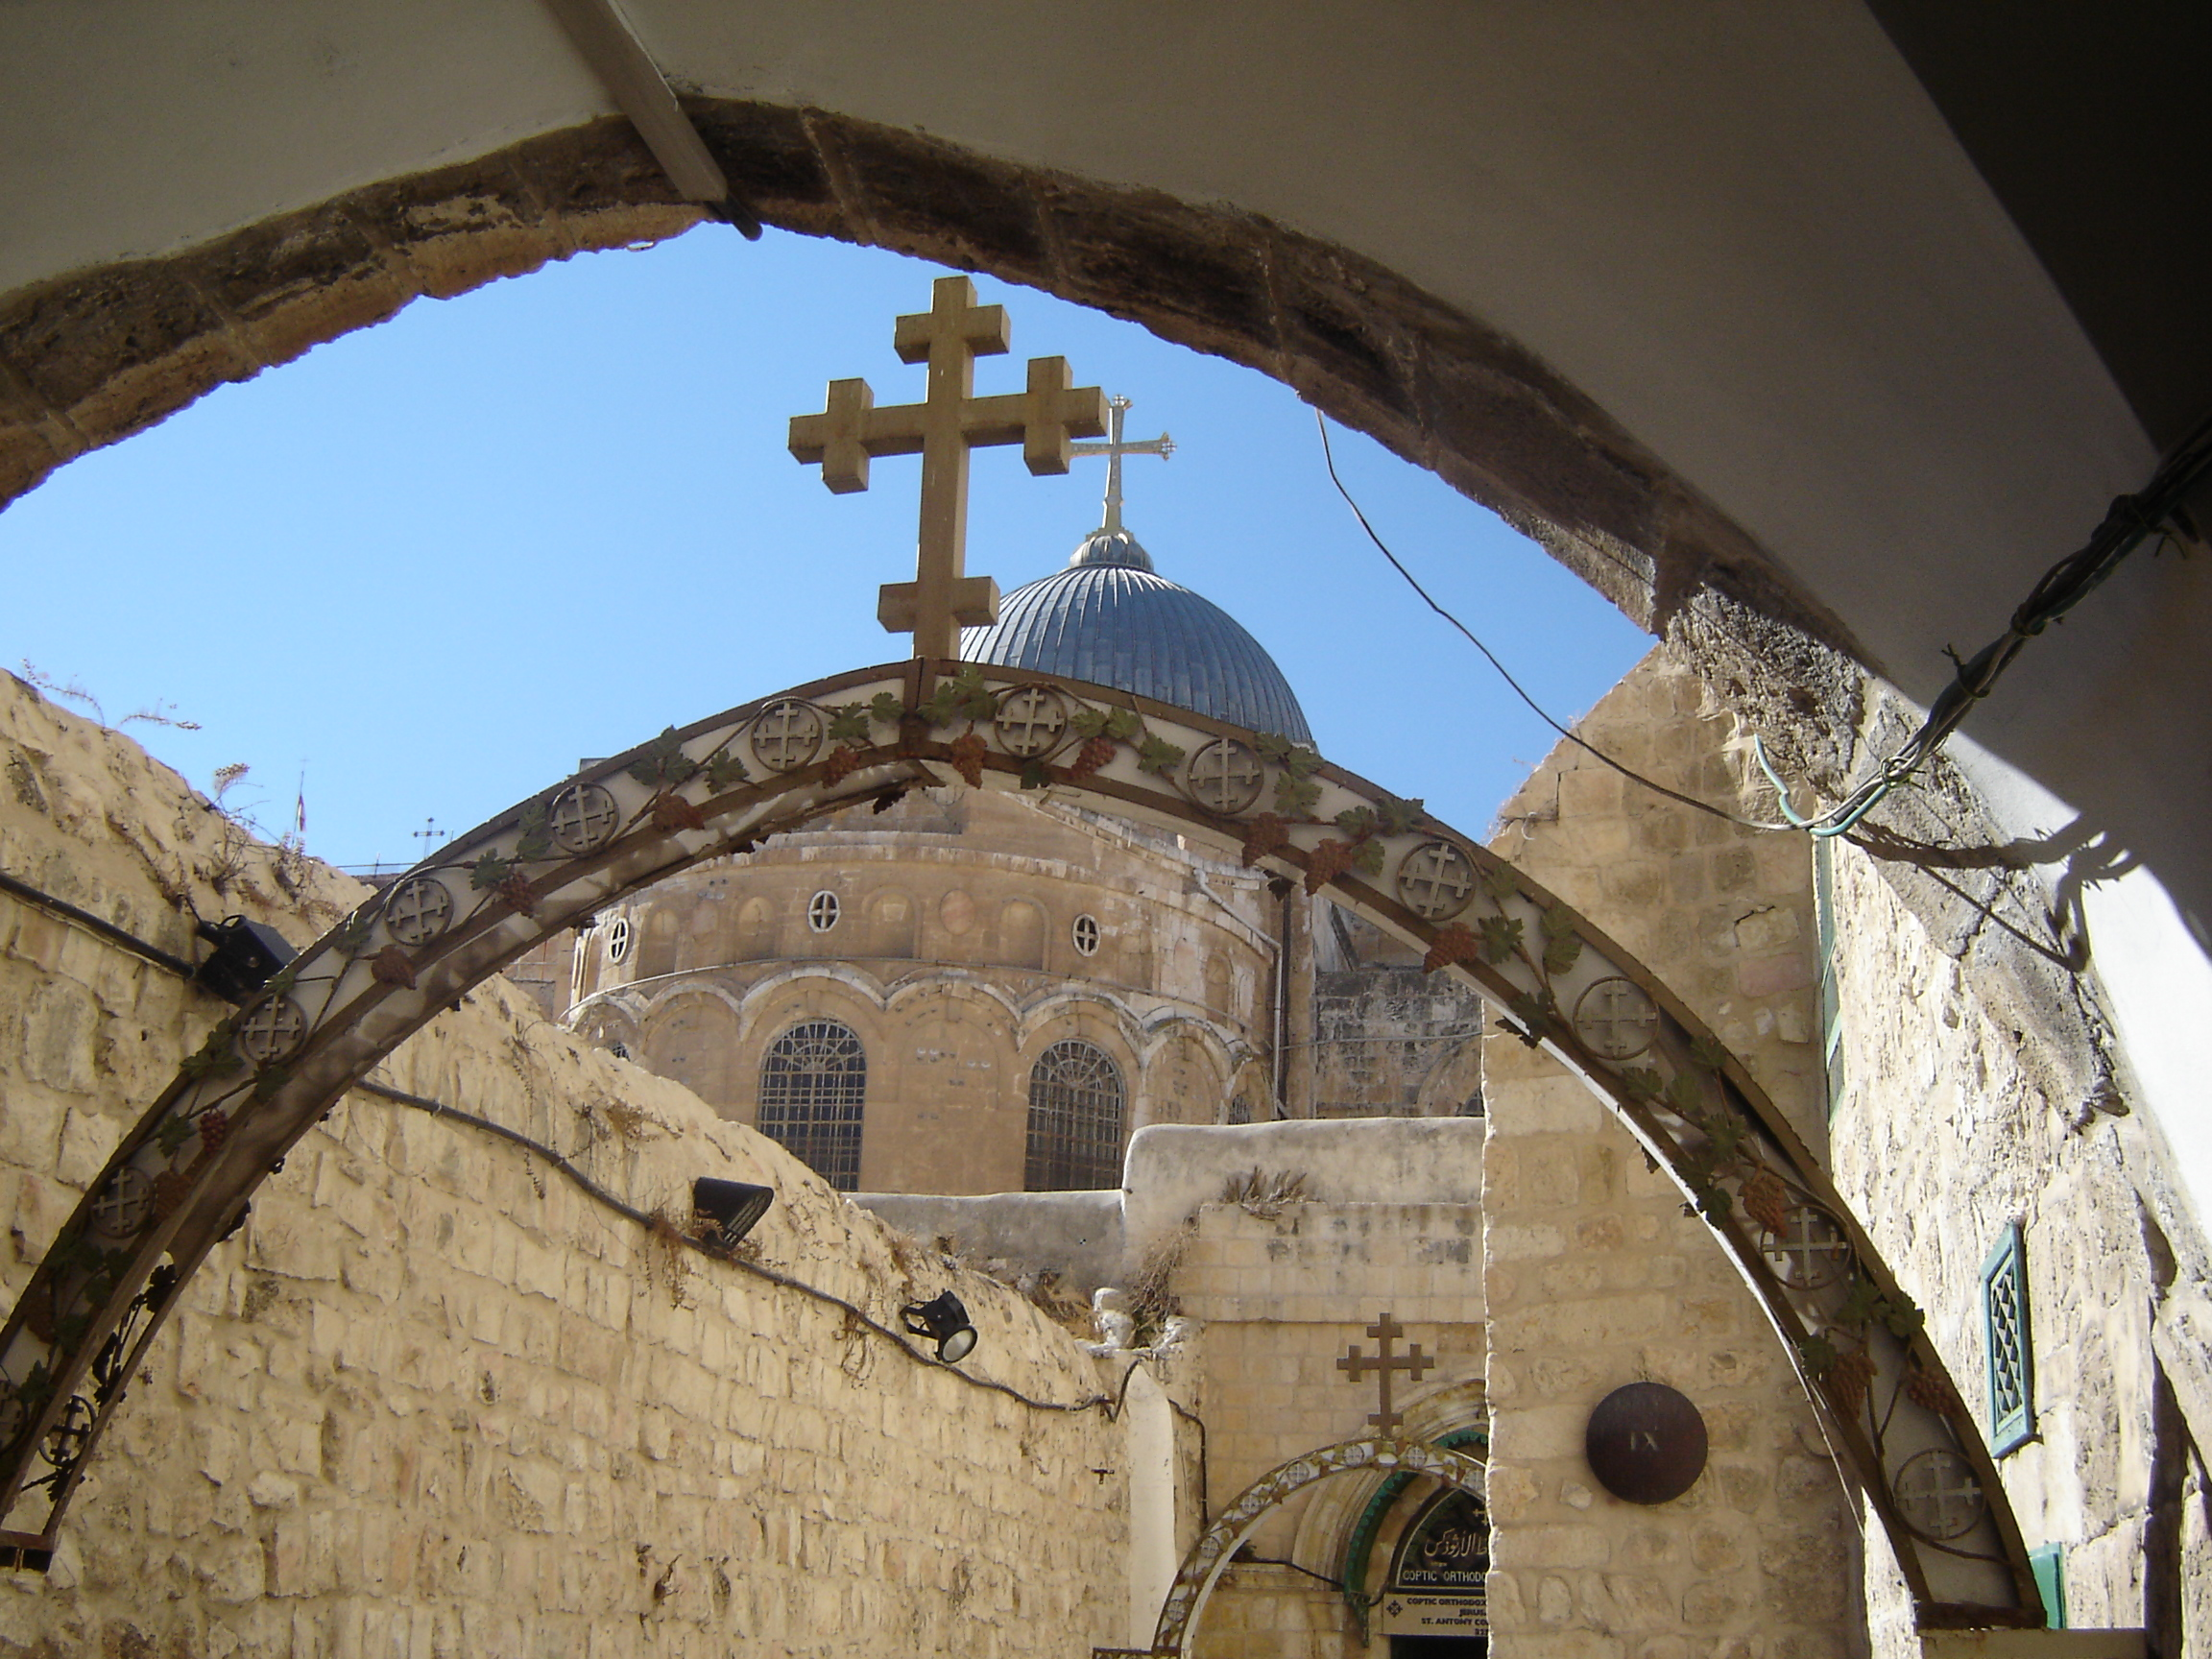 Via Dolorosa and the Road to the Crucifixion